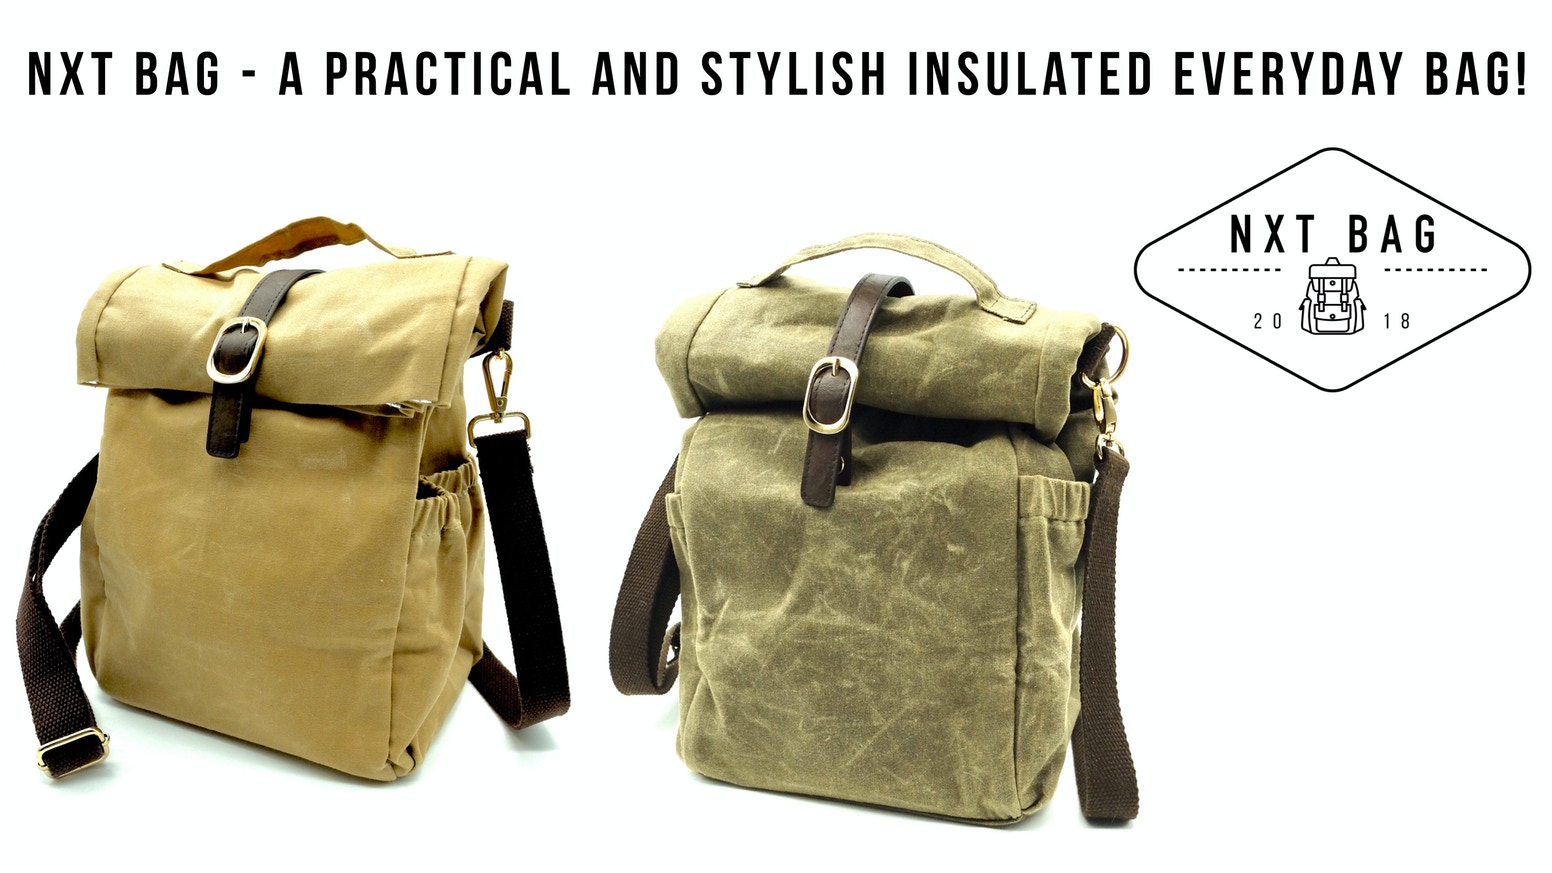 NXT Bag - The first truely practical and stylish insulated everyday bag!